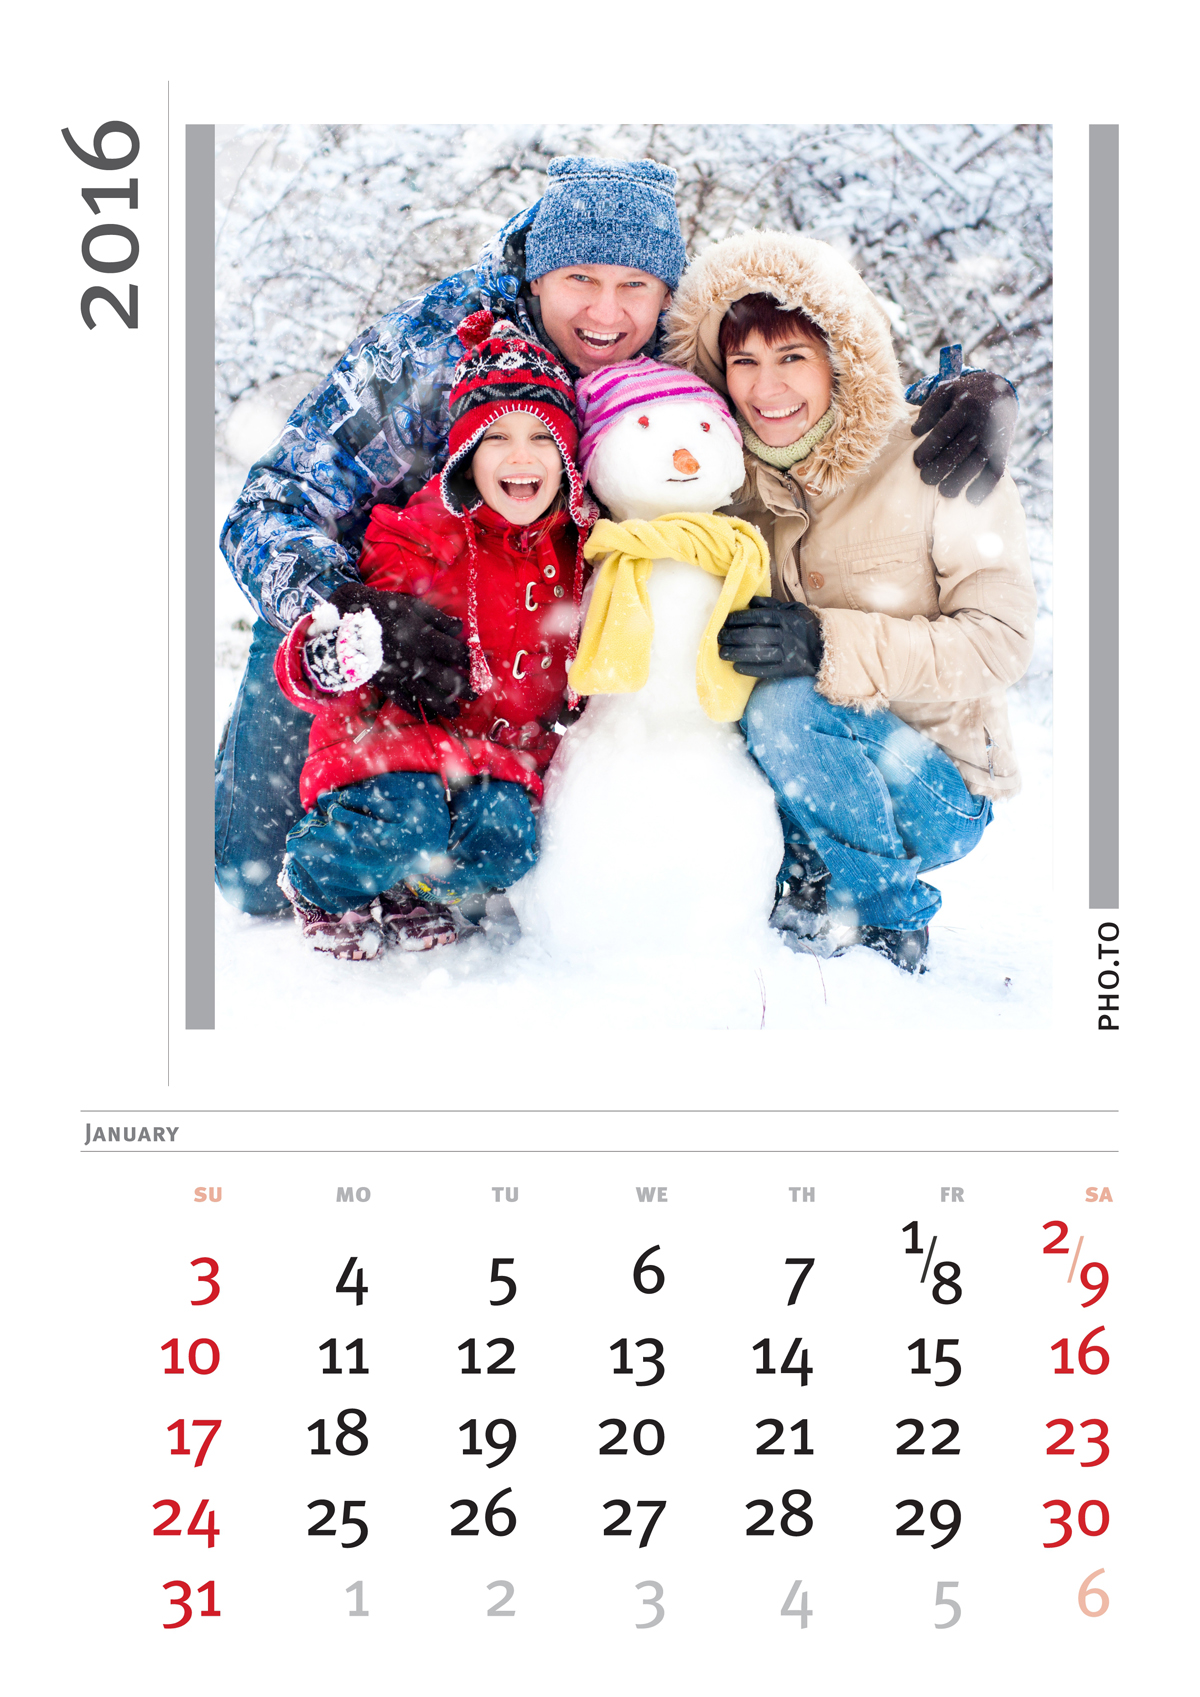 Custom photo calendar with a picture of a family made for free.